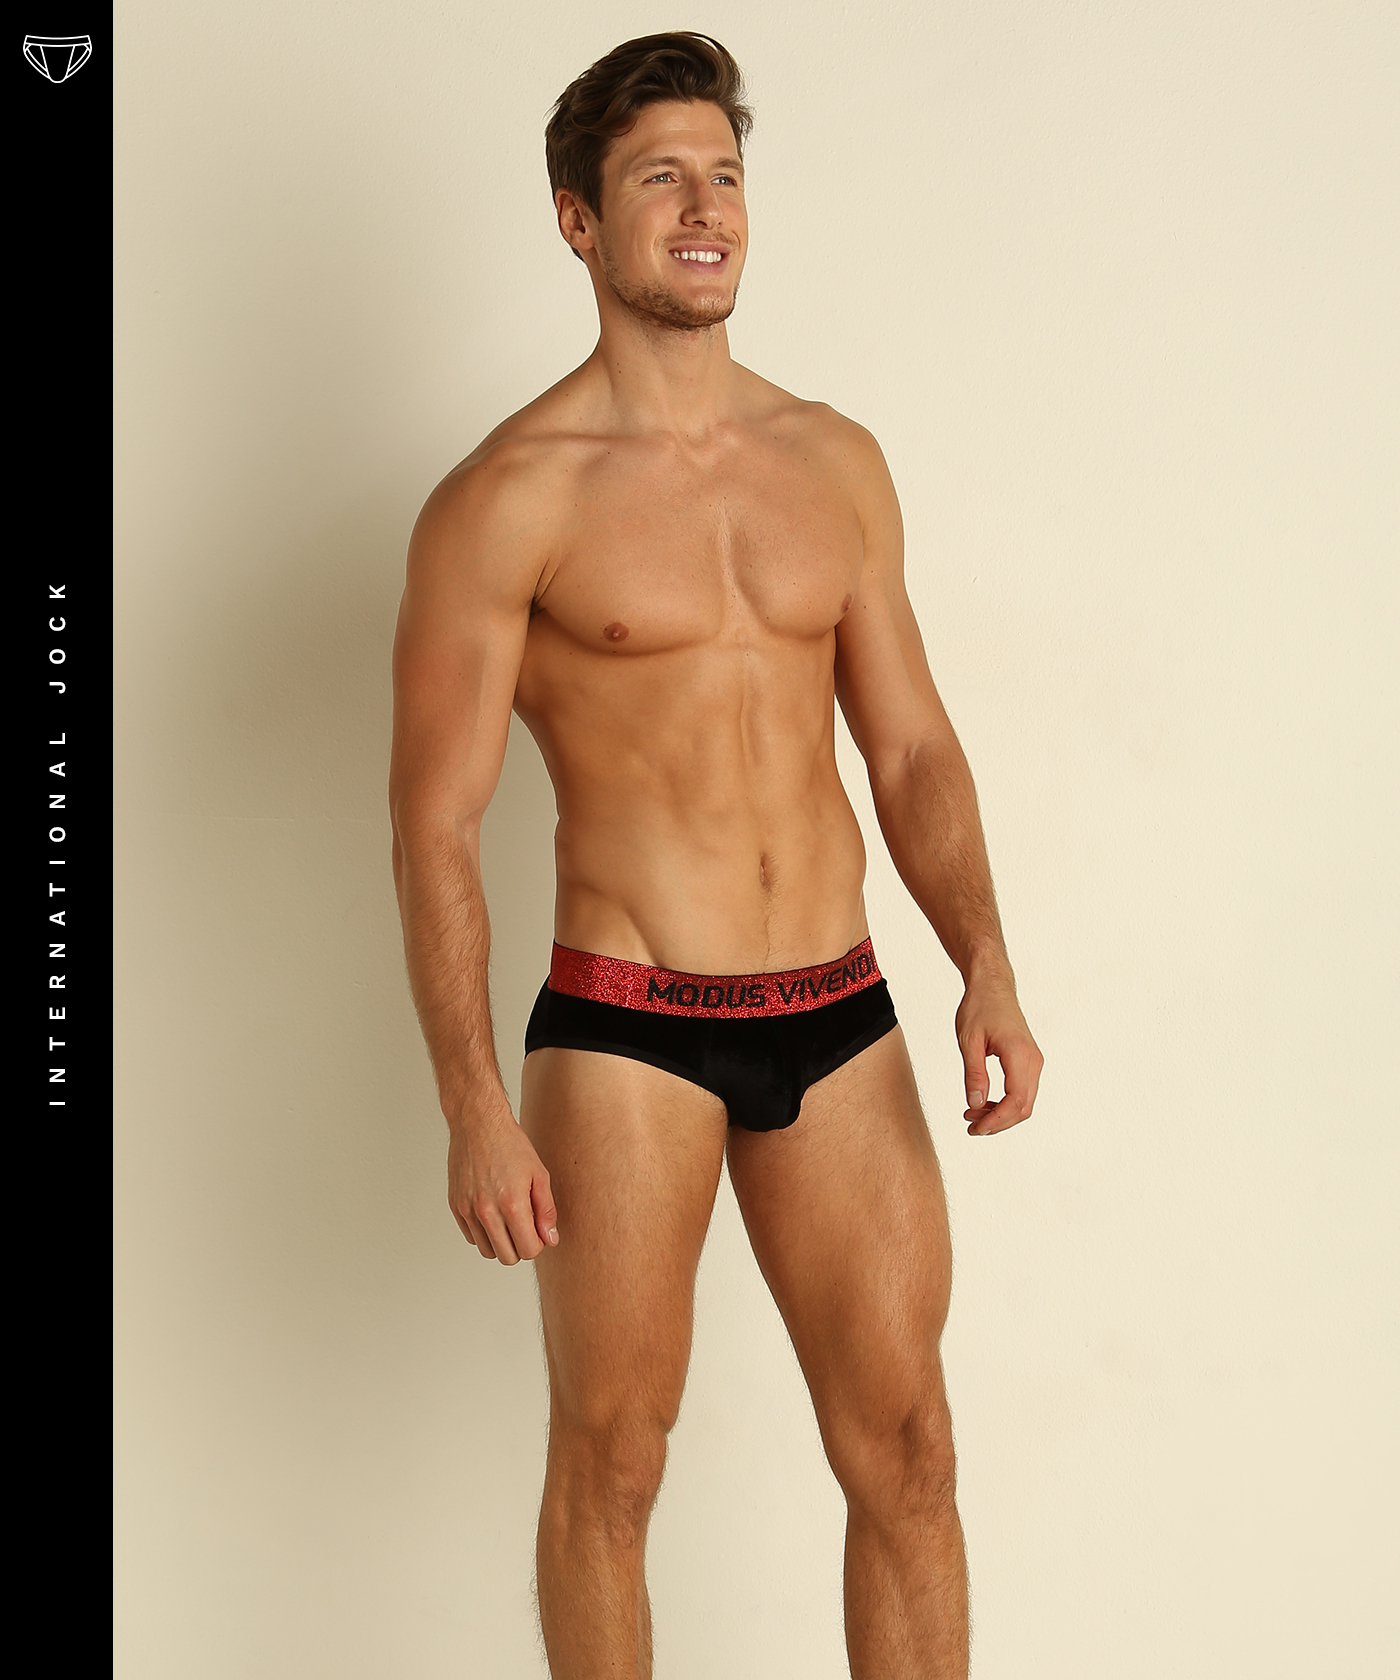 7ecacb45 This Modus Vivendi brief is made of soft and plush velvet micromodal fabric  for an unbelievably comfortable wearing experience. The glittery waistband  adds ...